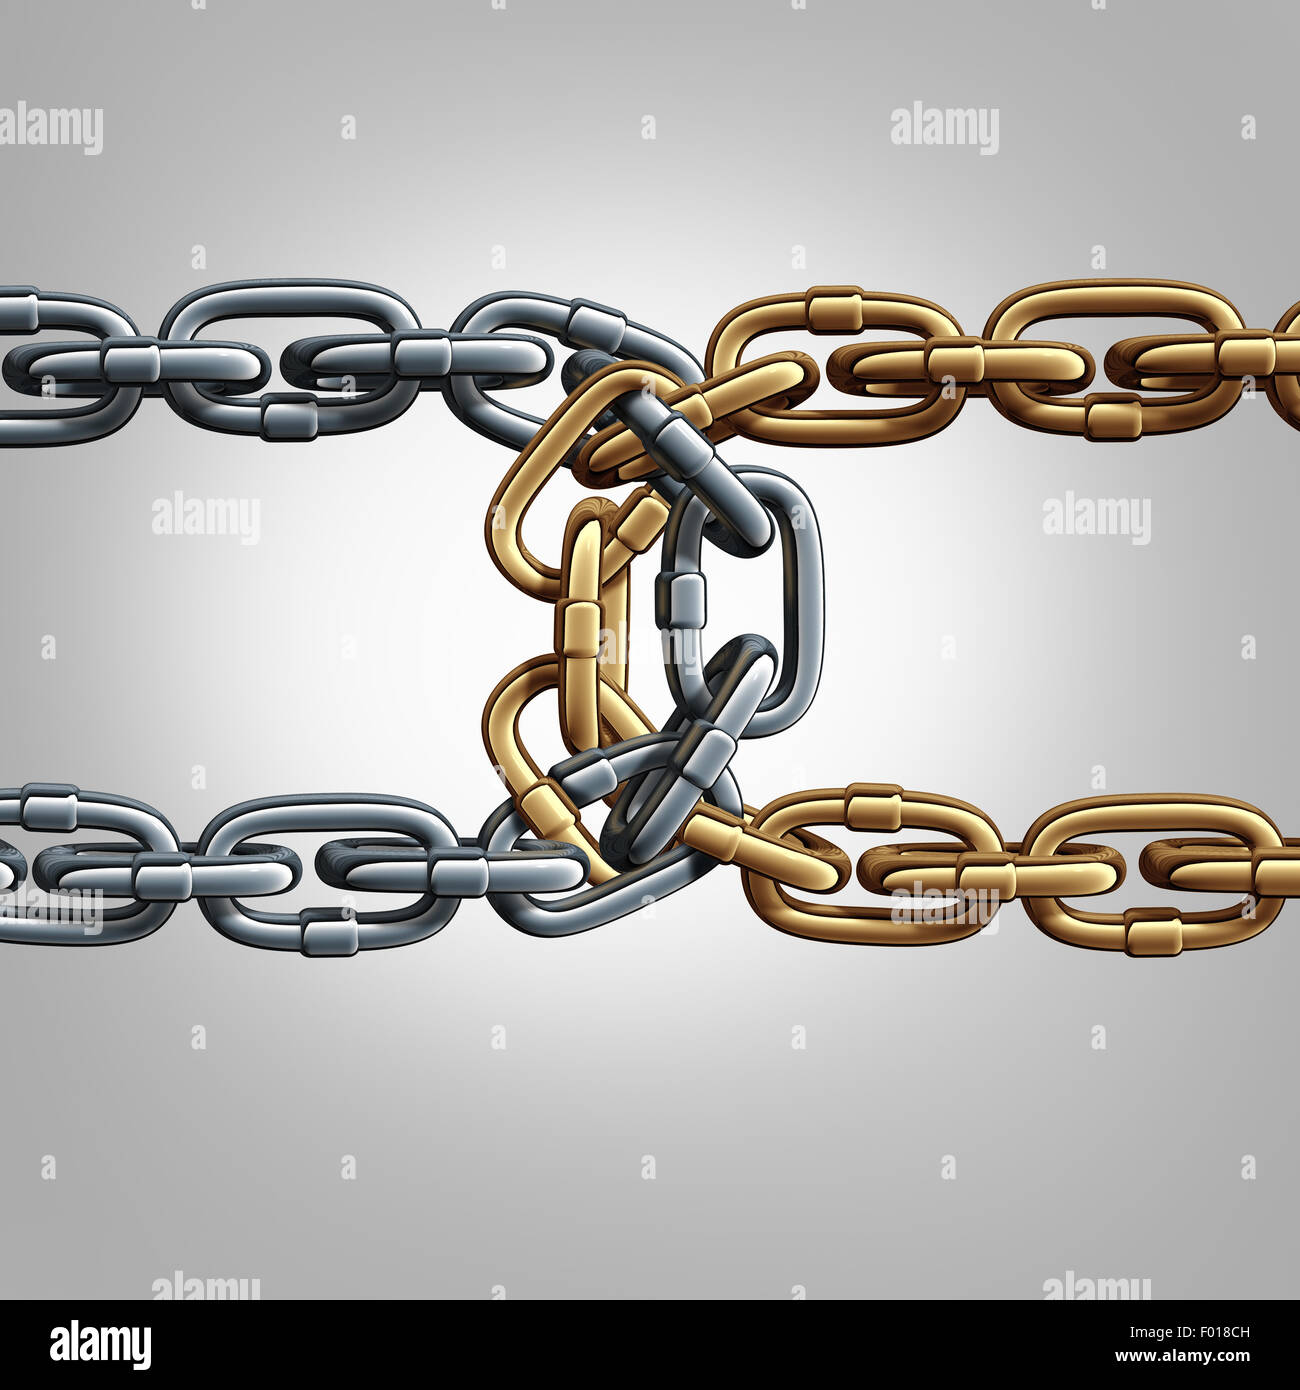 Unity chain connected concept as two different groups of chains tied and linked together as an unbreakable connection - Stock Image